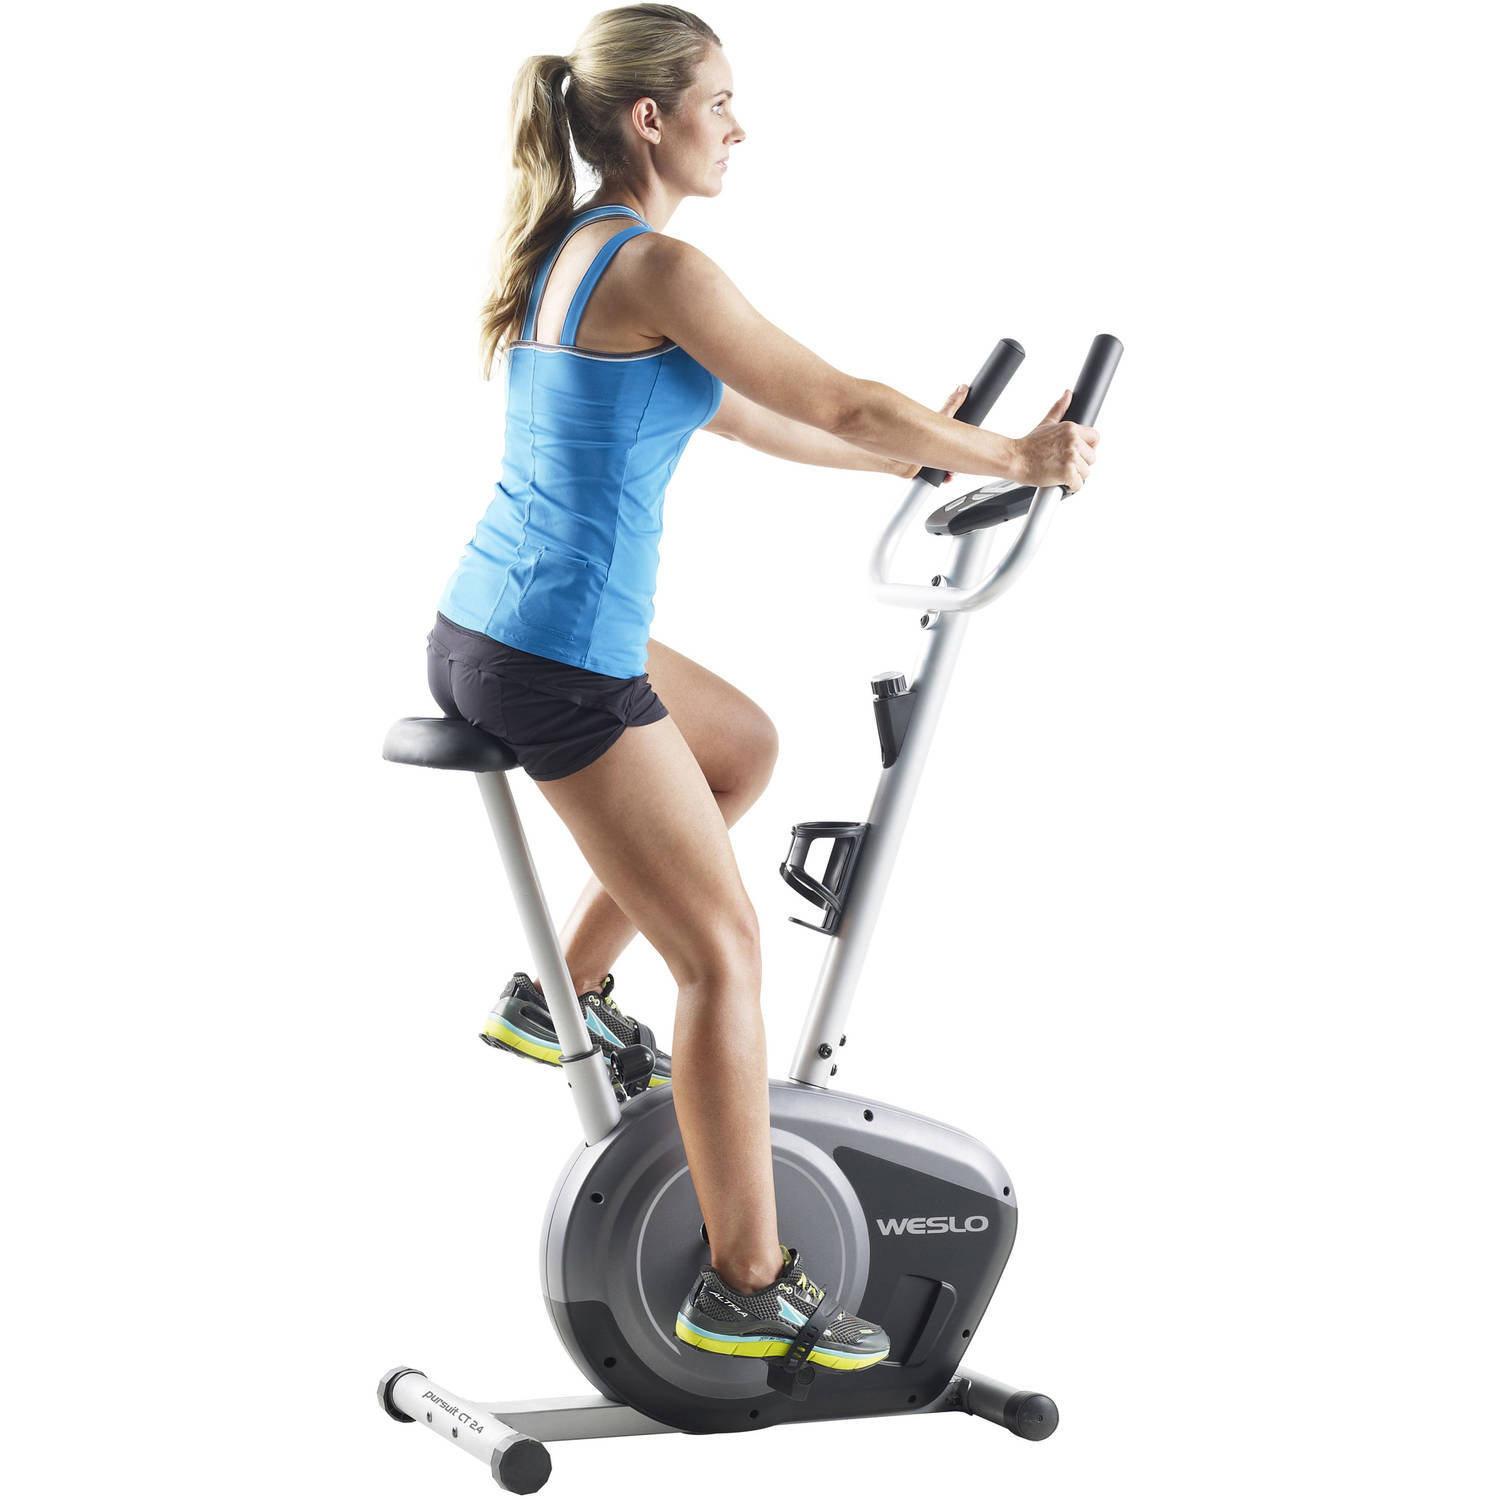 Weslo Pursuit CT 2.4 Upright Exercise Bike with Comfortable Seat